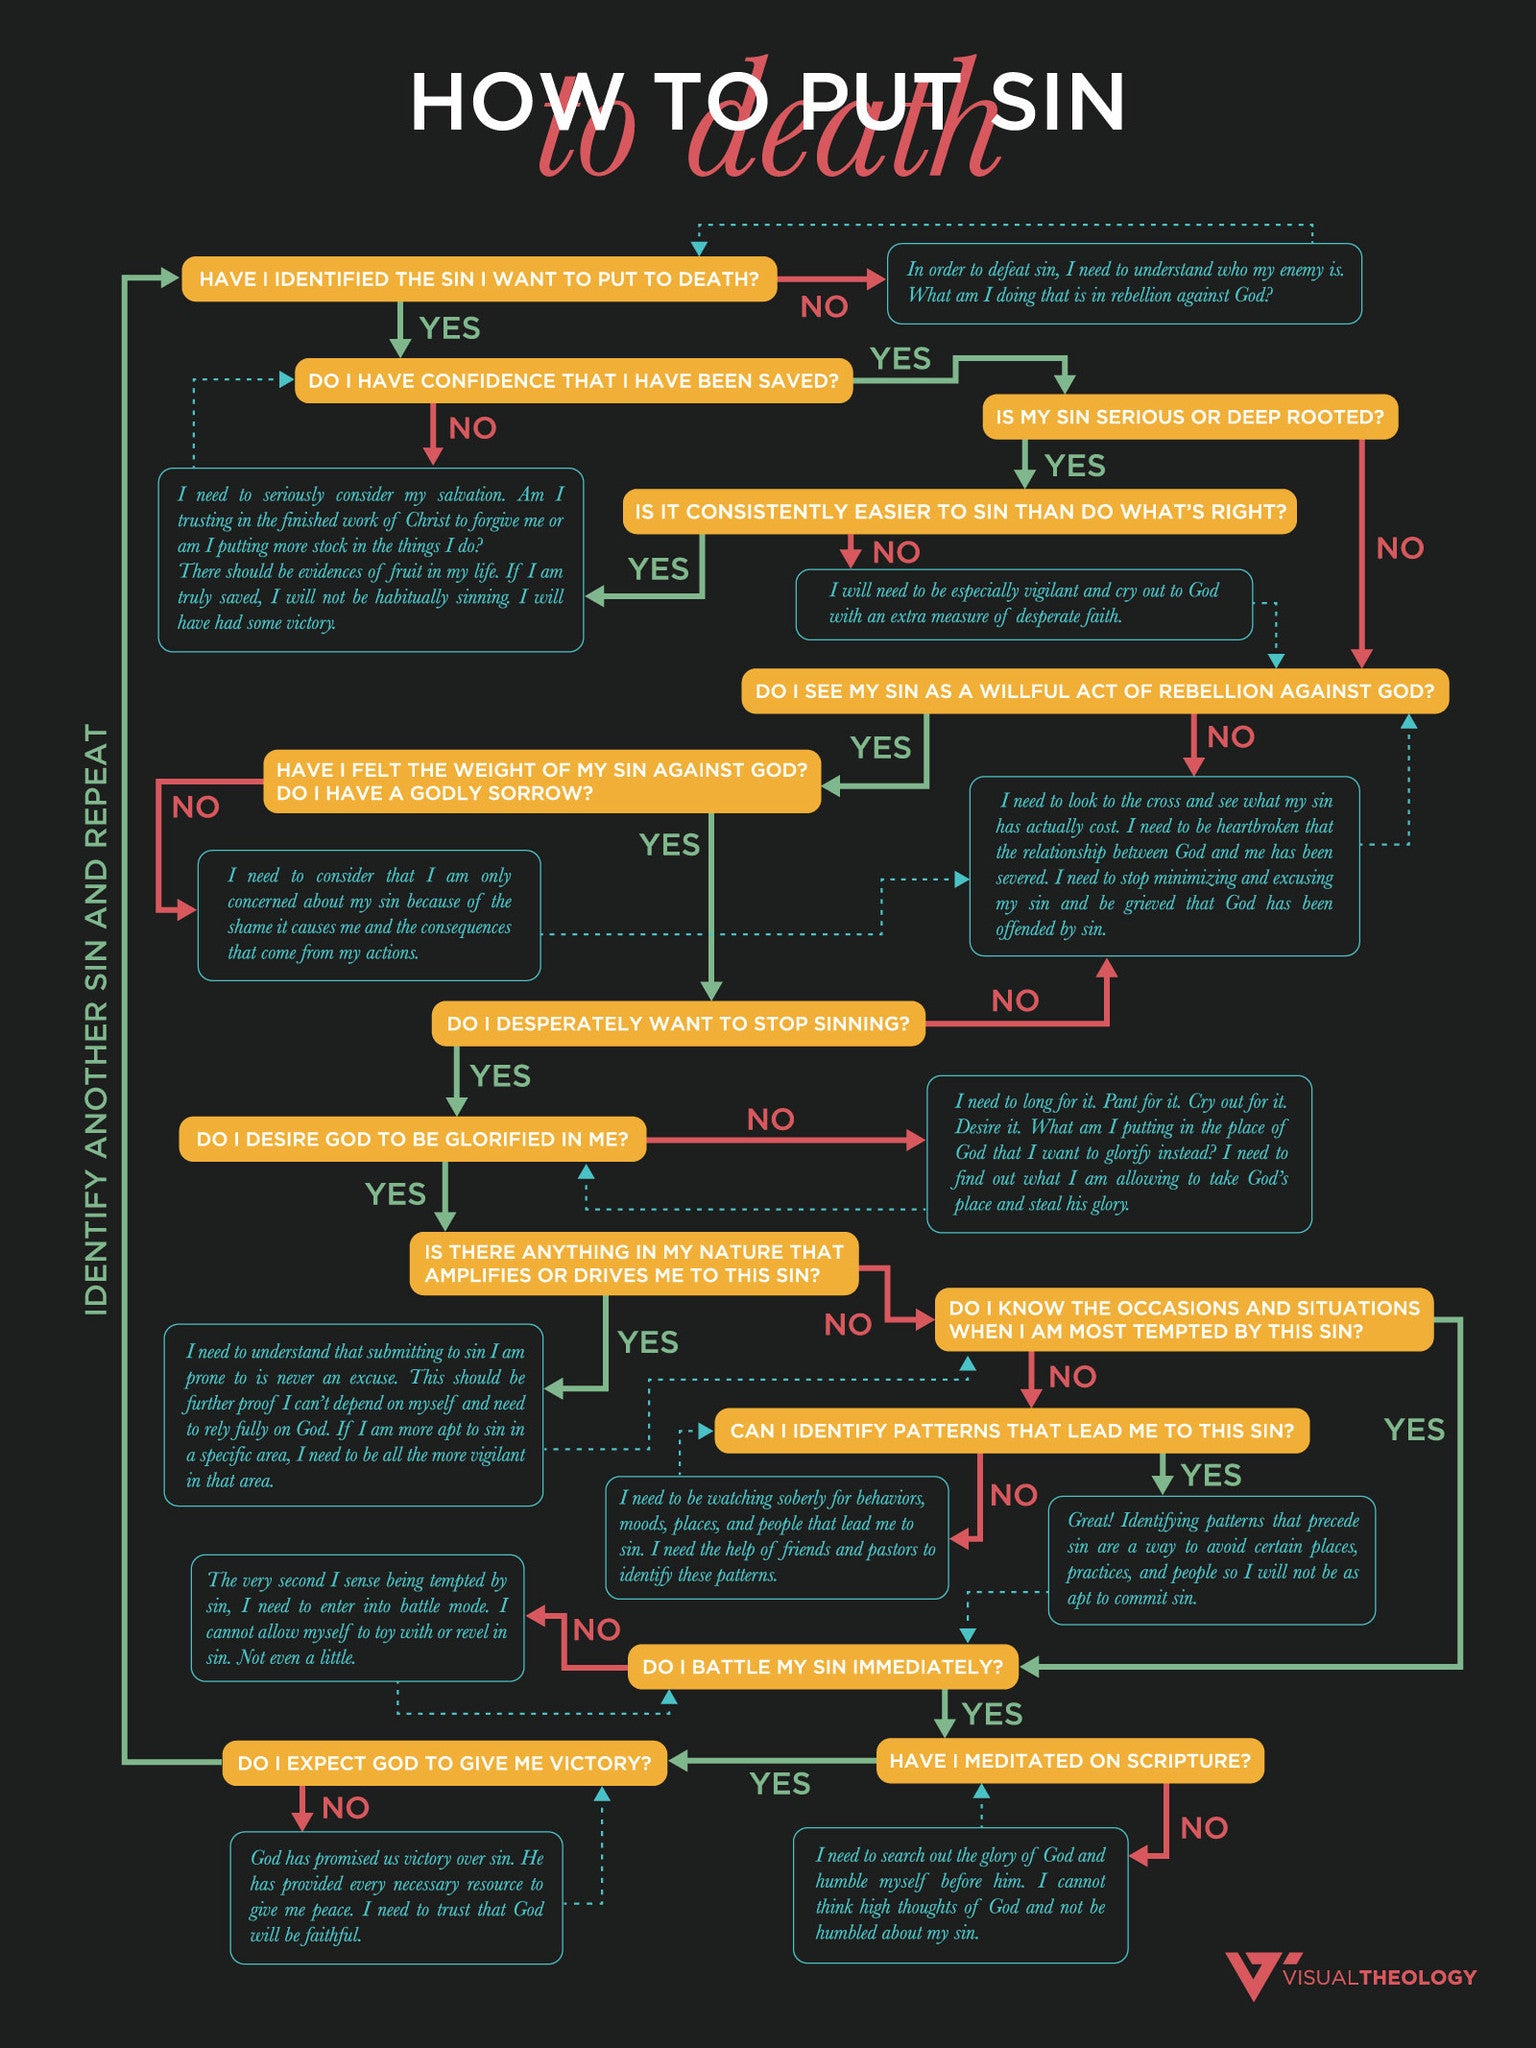 Putting Sin to Death Flowchart